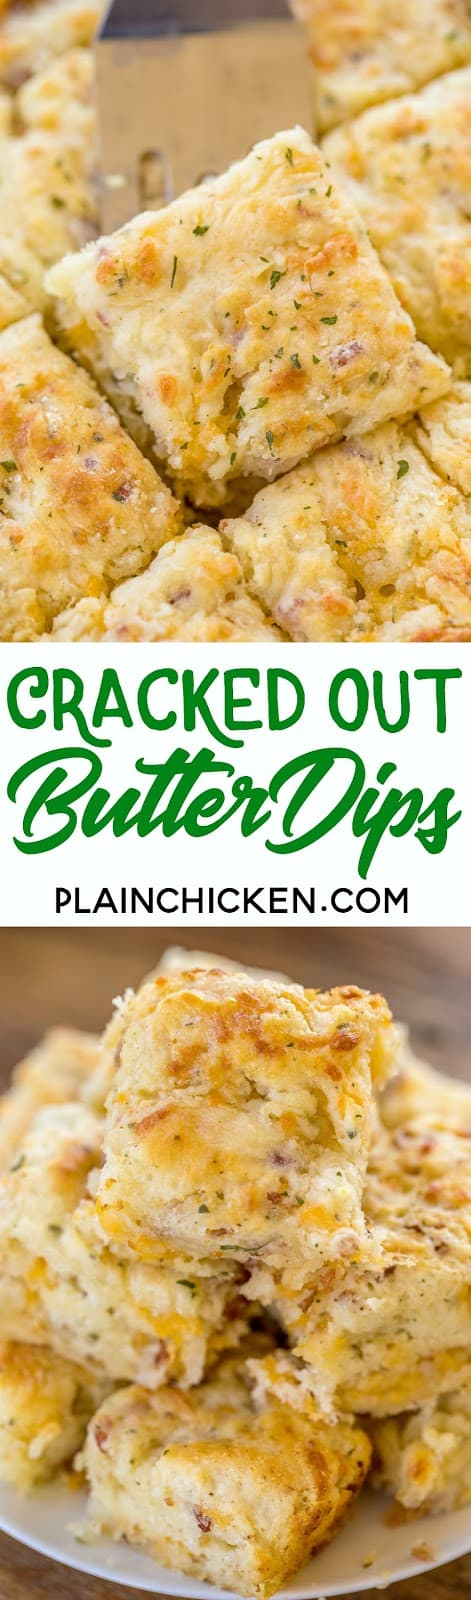 Cracked Out Butter Dips - biscuits loaded with cheddar, bacon and ranch! Only 8 simple ingredients! You probably have them in your pantry right now! No-kneading at all! Just mix dough together and pat down in pan. Ready in under 15 minutes! Everyone RAVES about these easy biscuits!! Great with dinner or for breakfast. YUM! #biscuits #bacon #breadrecipes